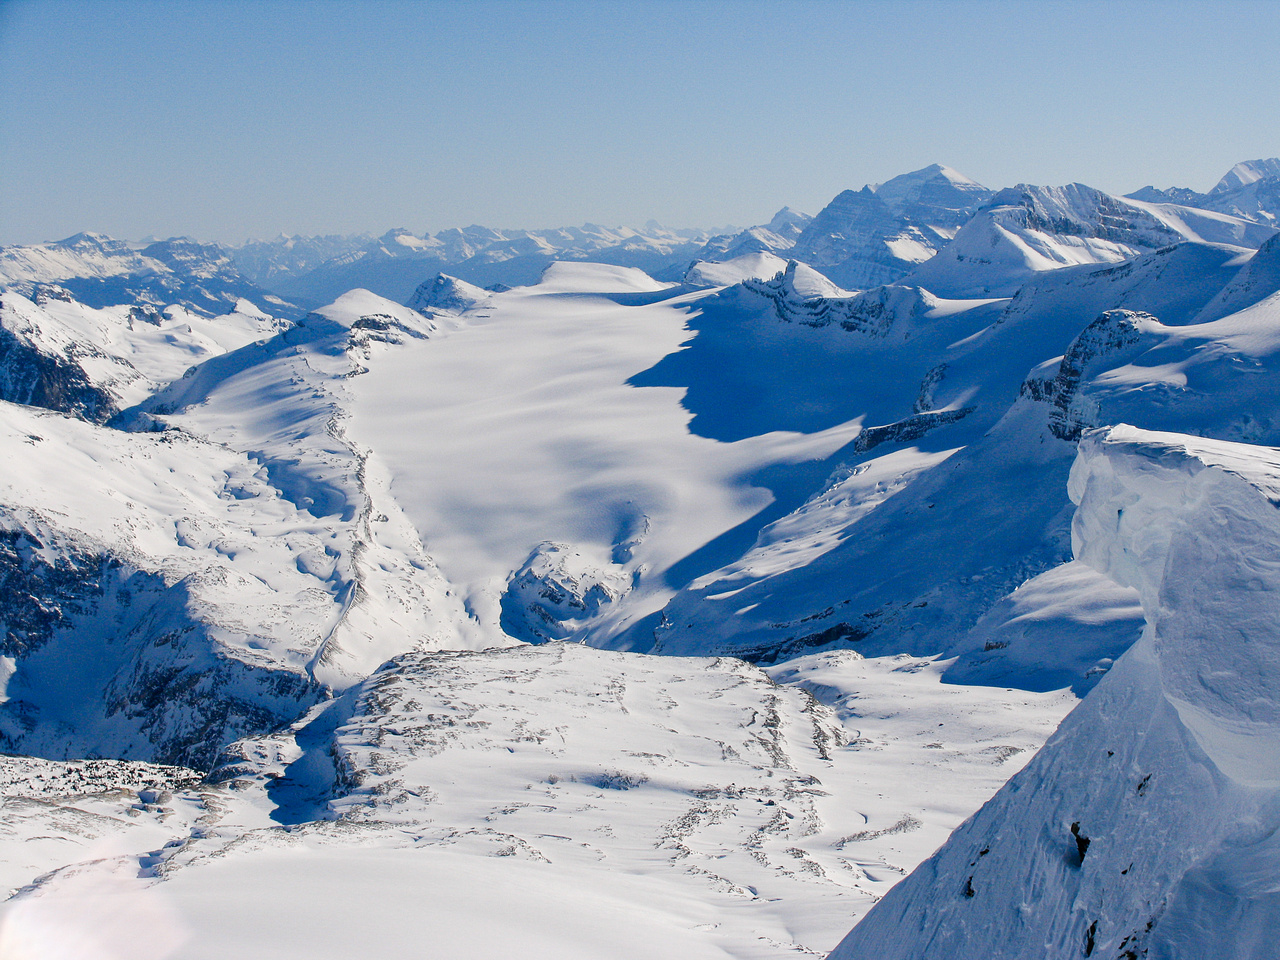 Looking over the Waputik Glacier and Lilliput to Mount Temple and Daly on the right.